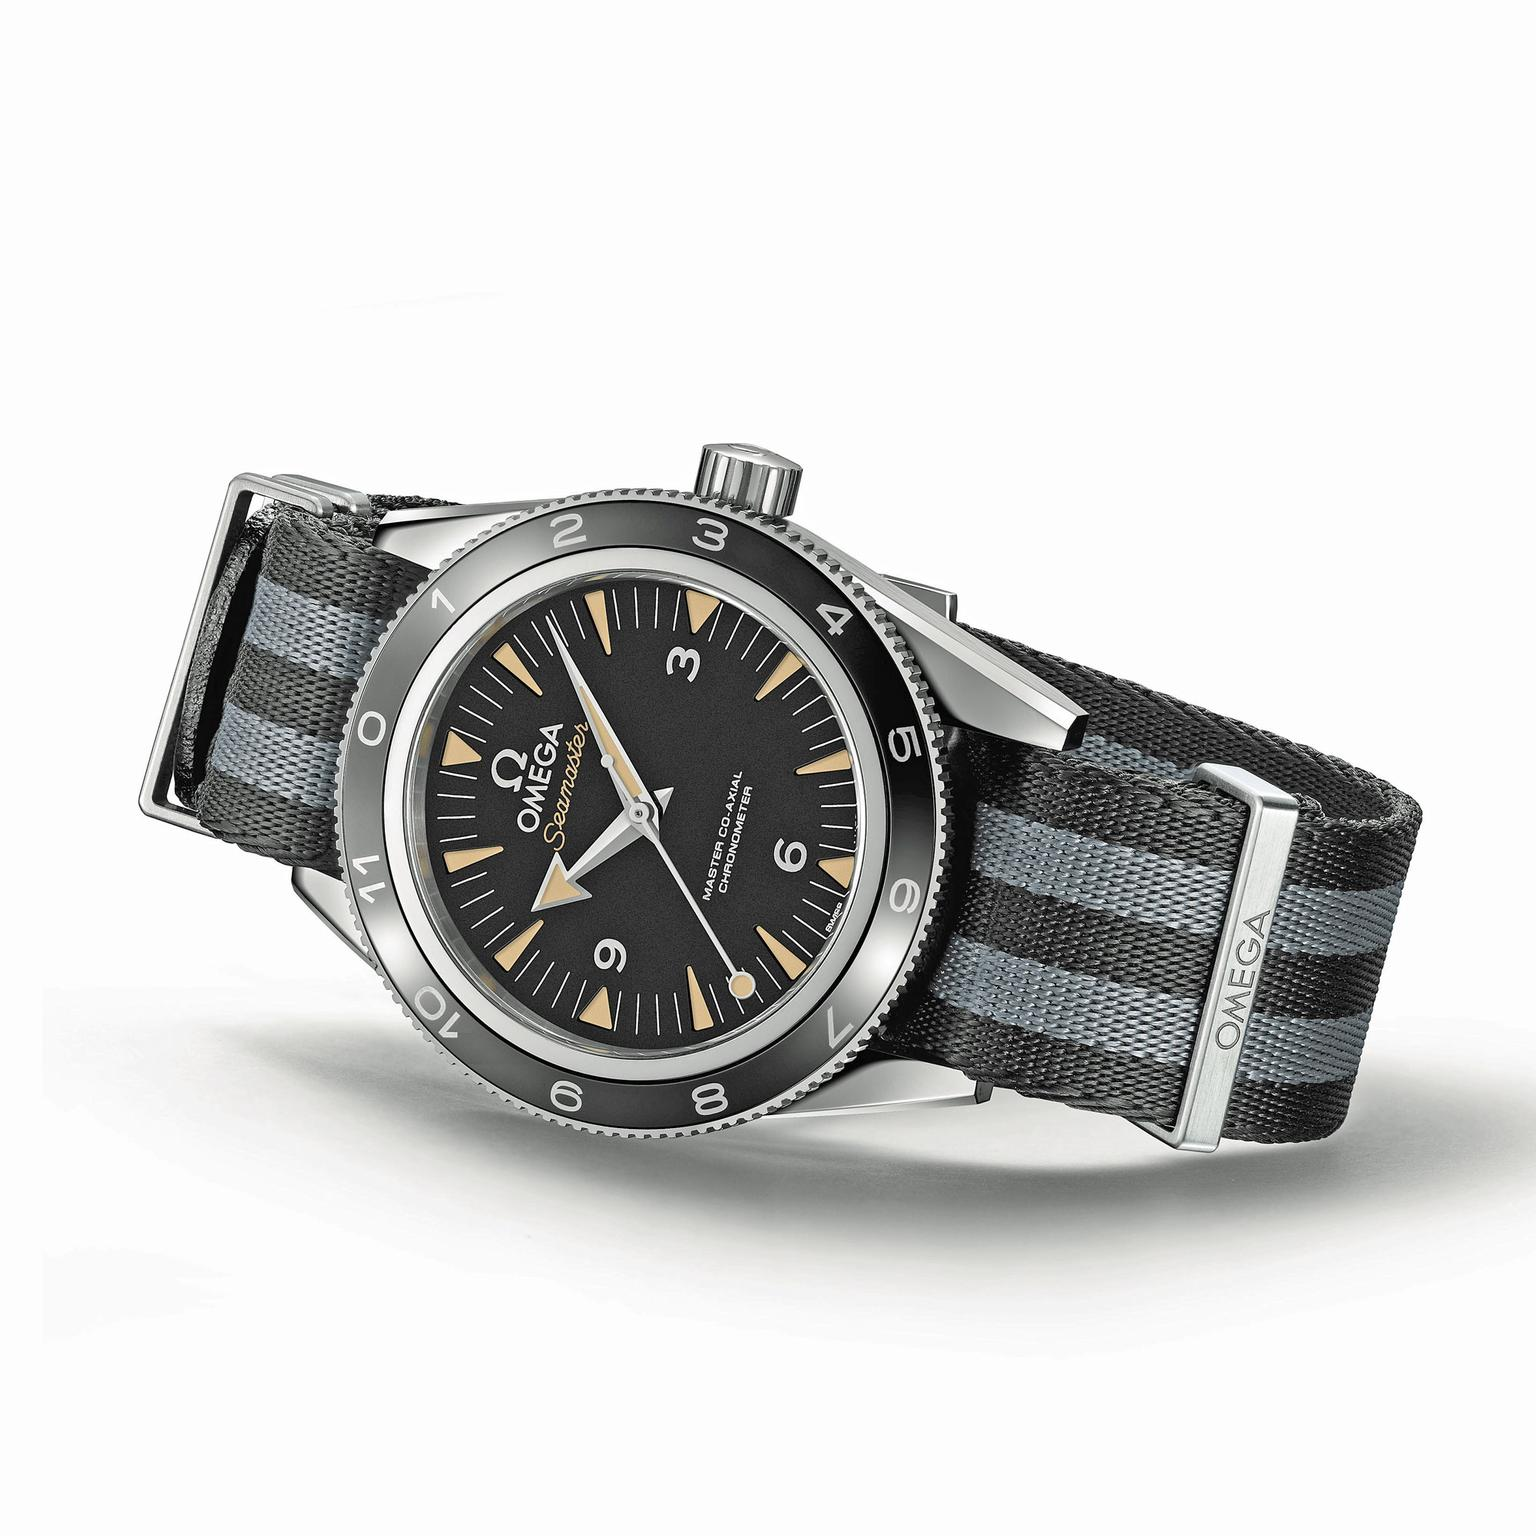 James Bond Omega Seamaster 300 Spectre limited edition watch